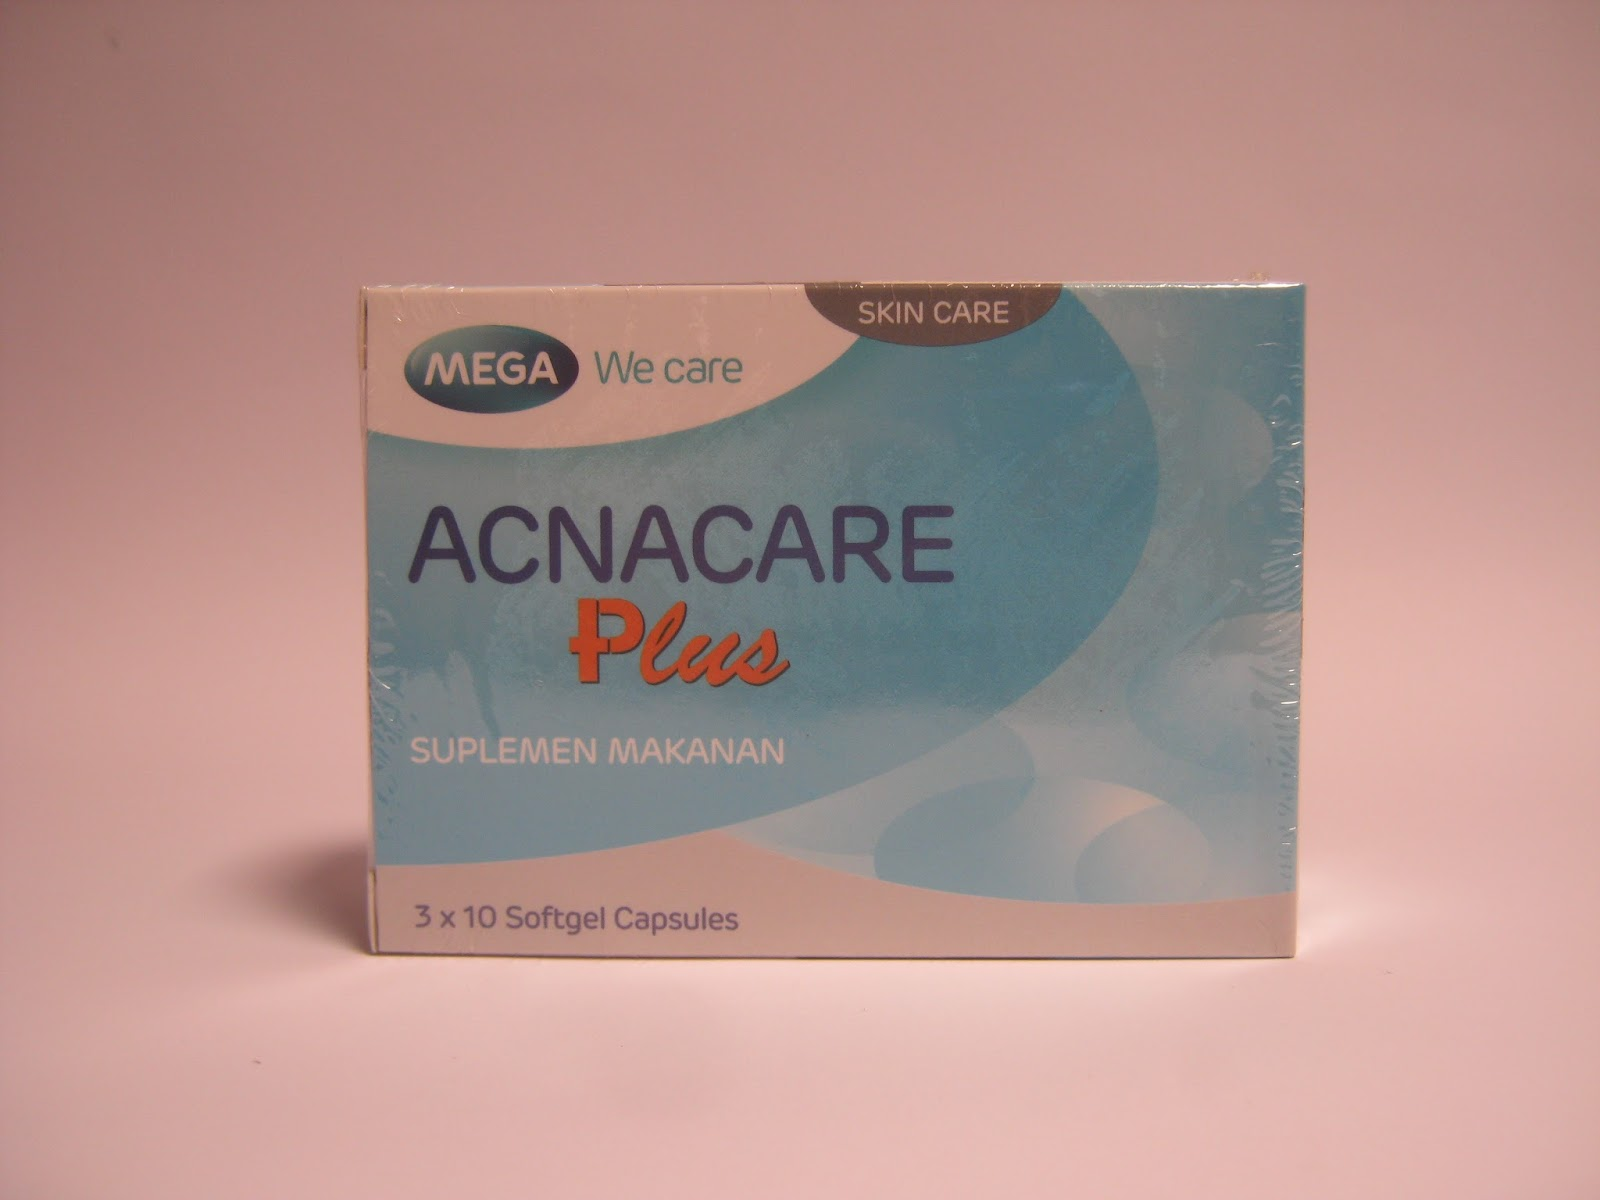 Acnacare Plus Mega We Care